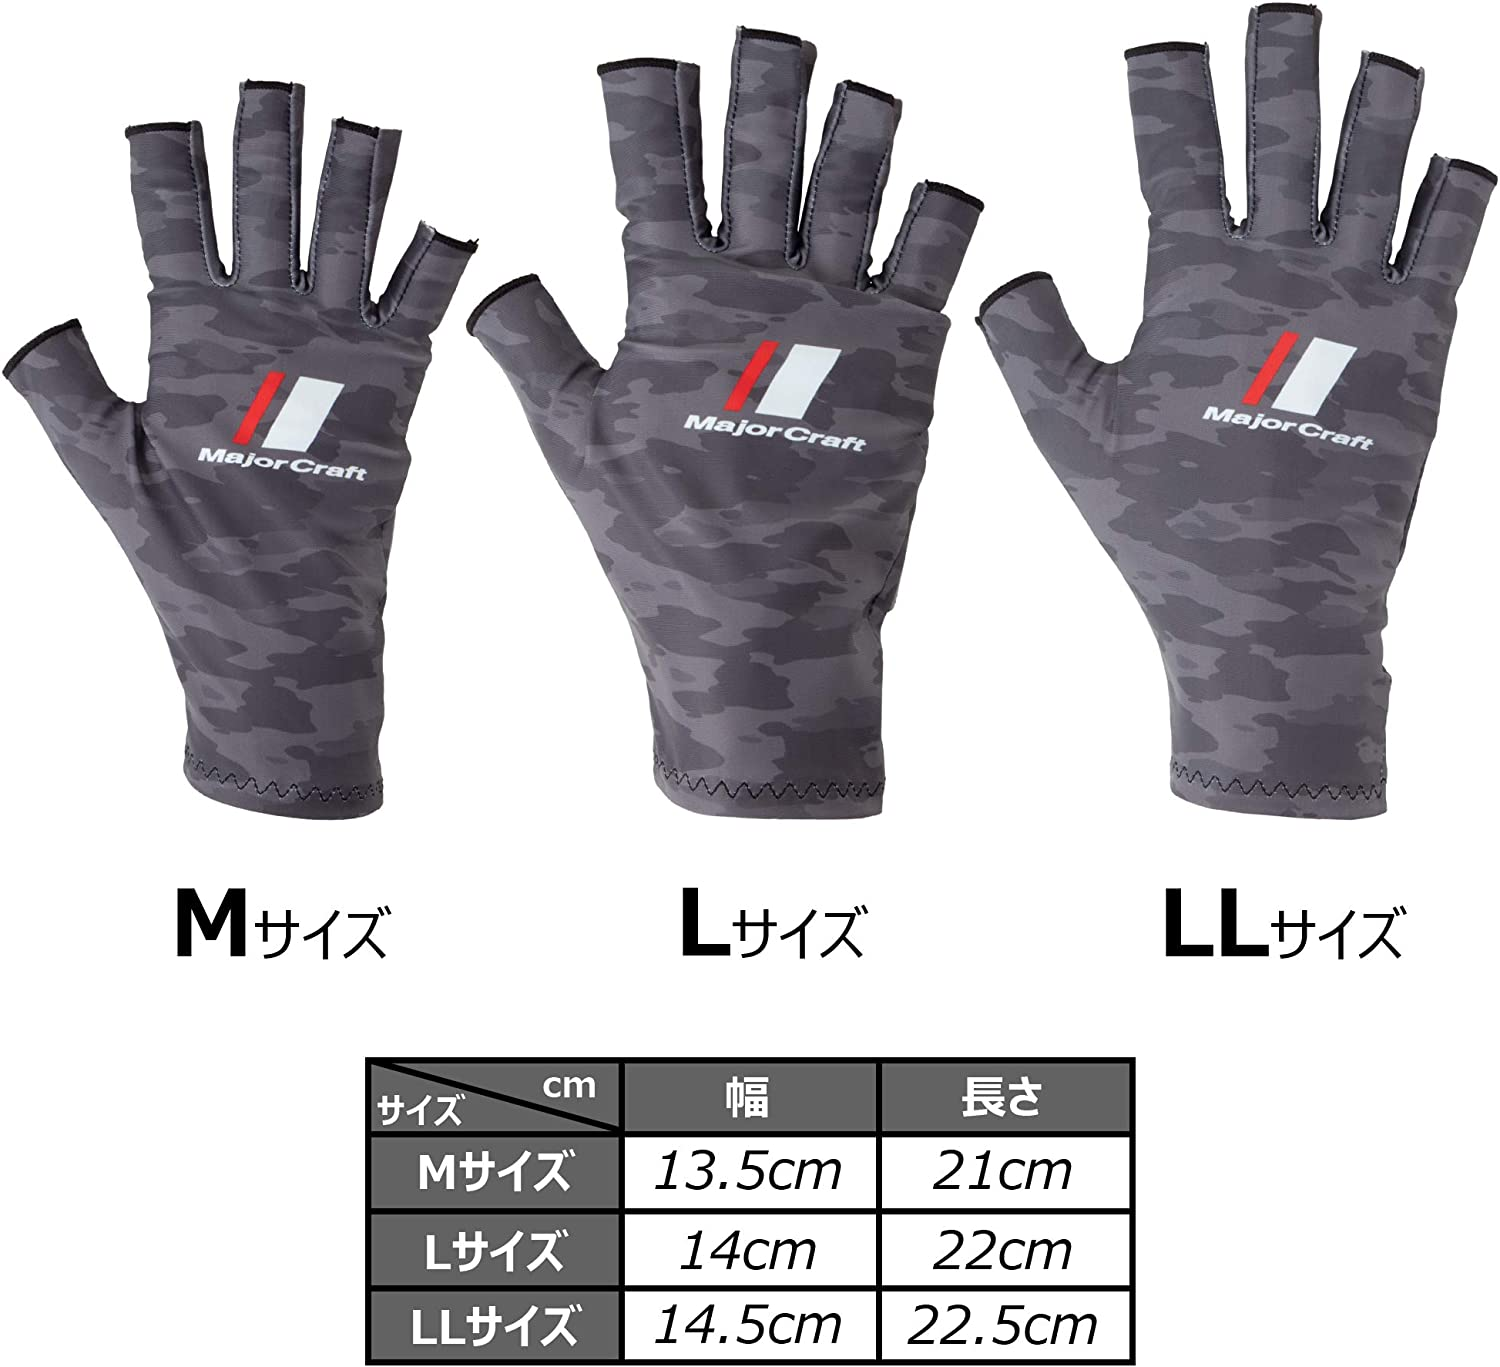 4298 Details about  /Major Craft Gloves Sun Protection SG-LL20DGY Size LL